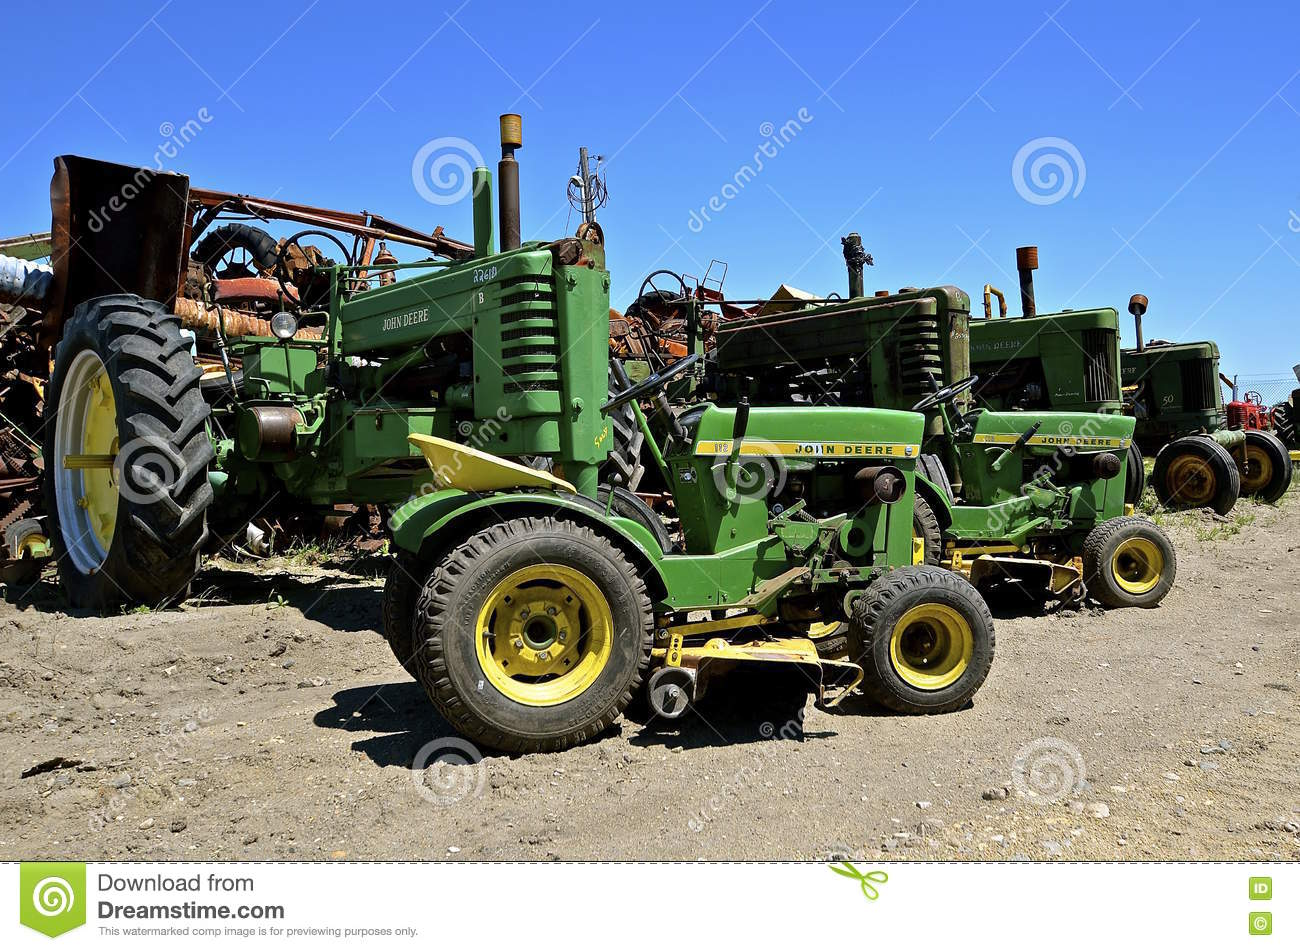 Worn Out Tractors And Riding Lawn Mowers Editorial